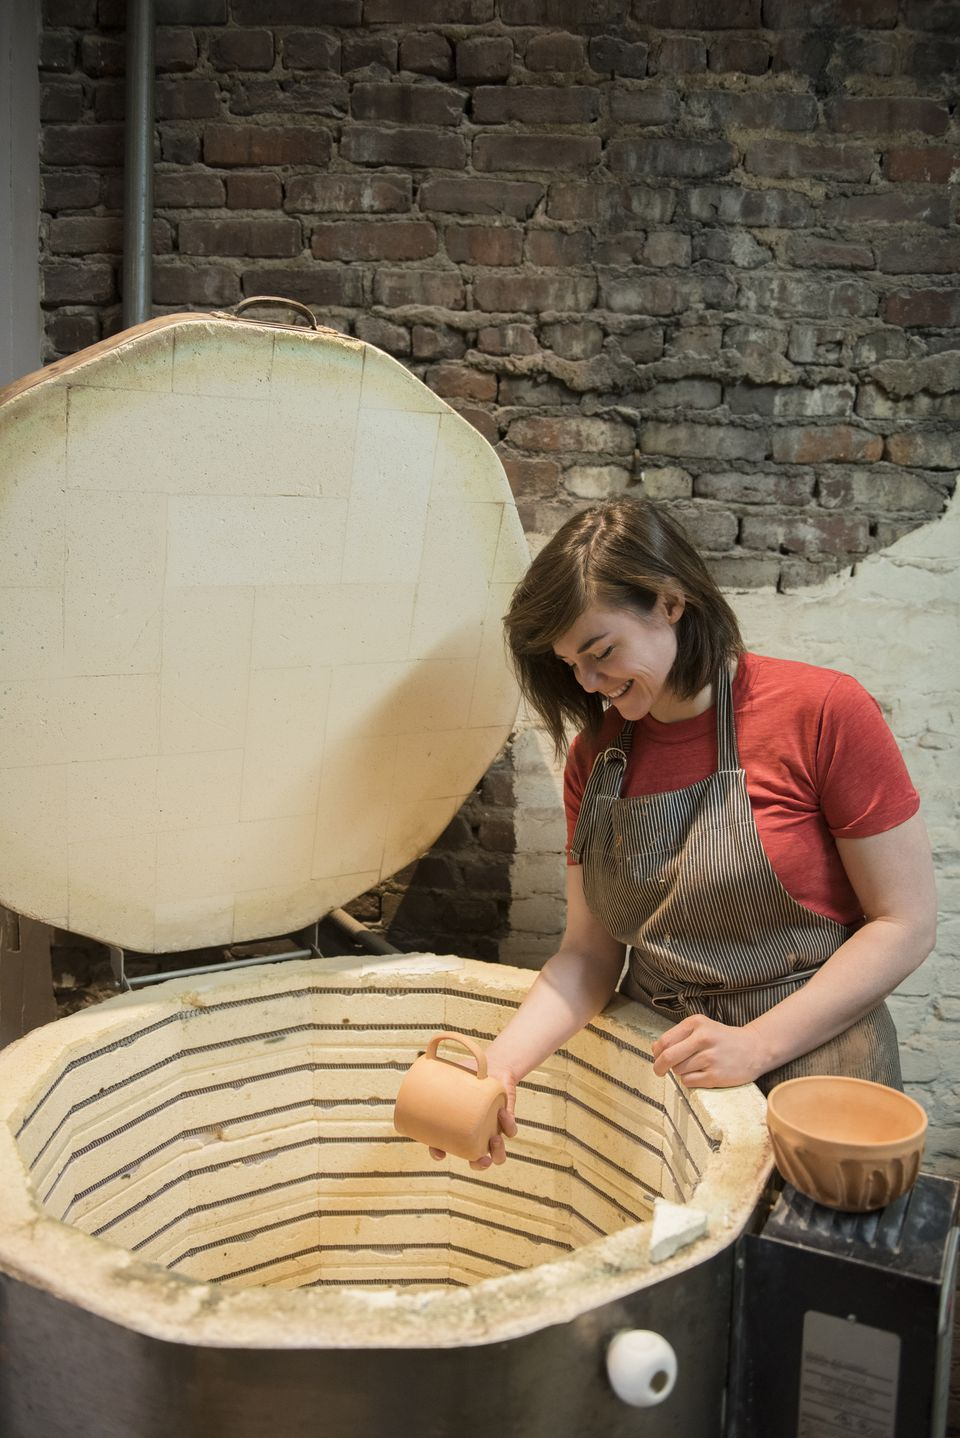 A woman putting clay in a kiln.